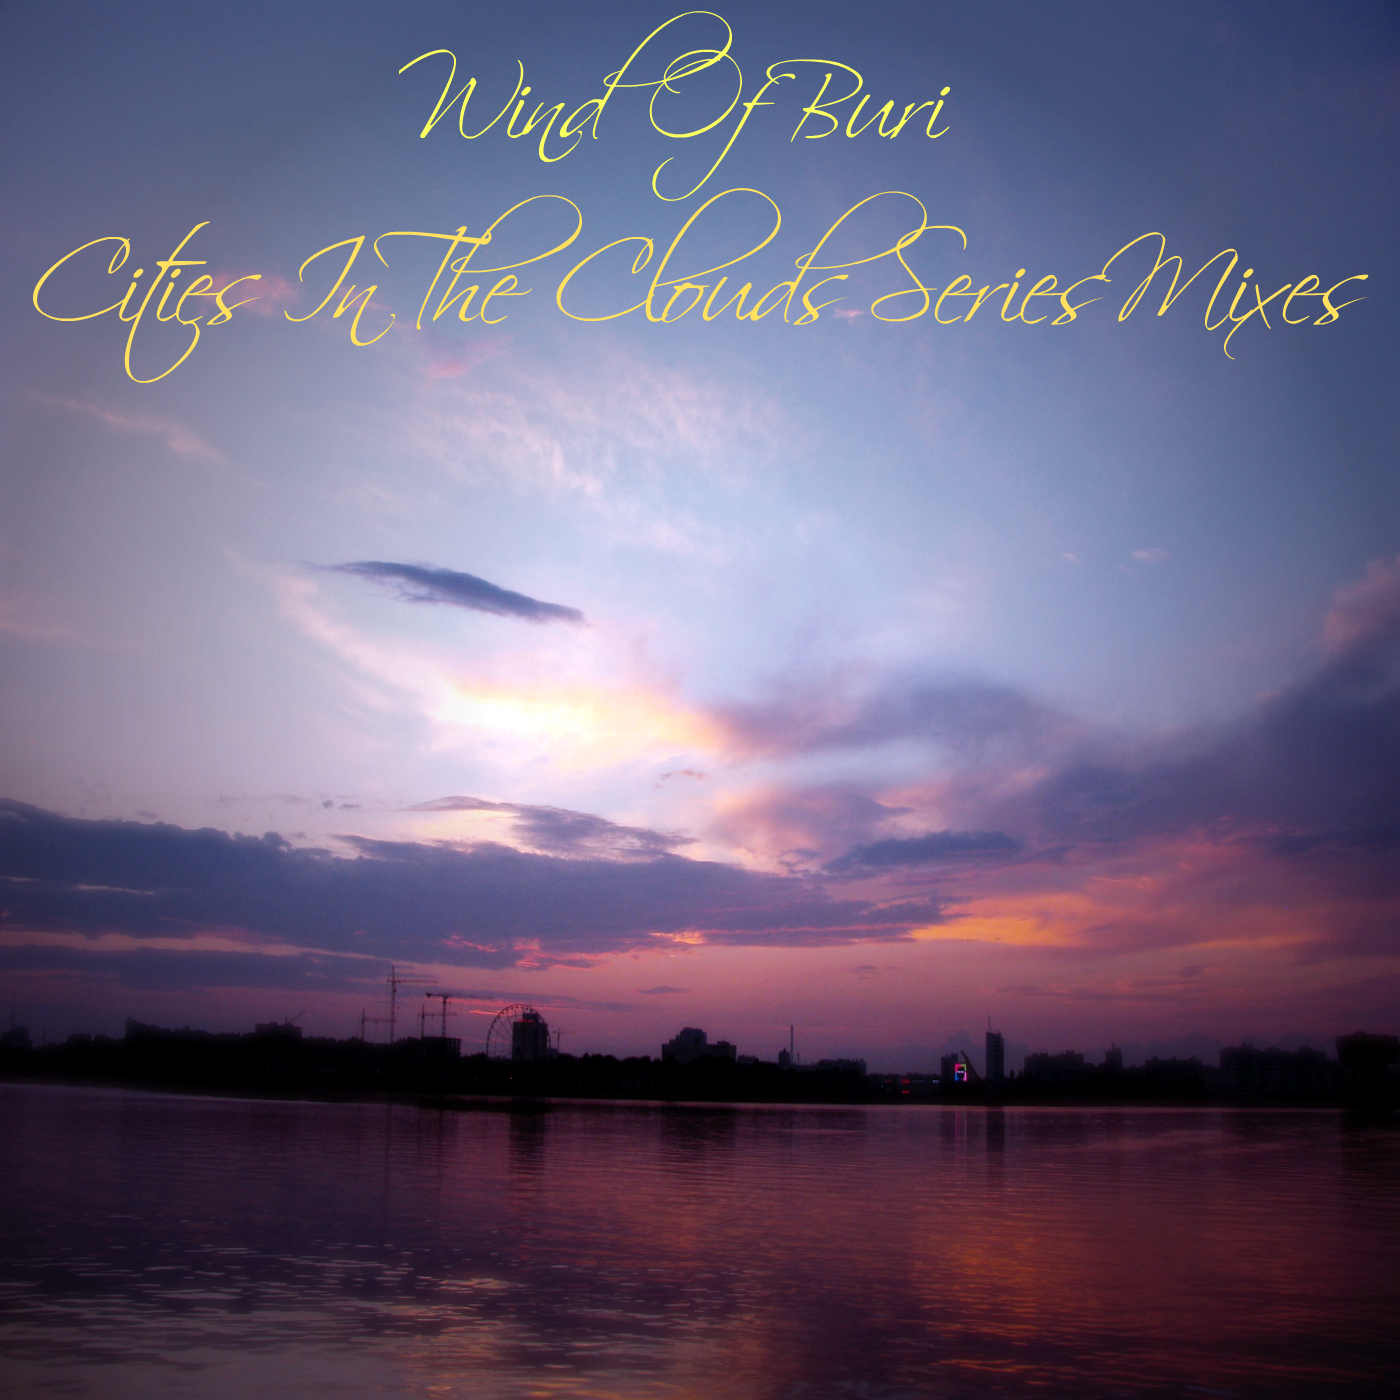 Wind Of Buri - Cities In The Clouds